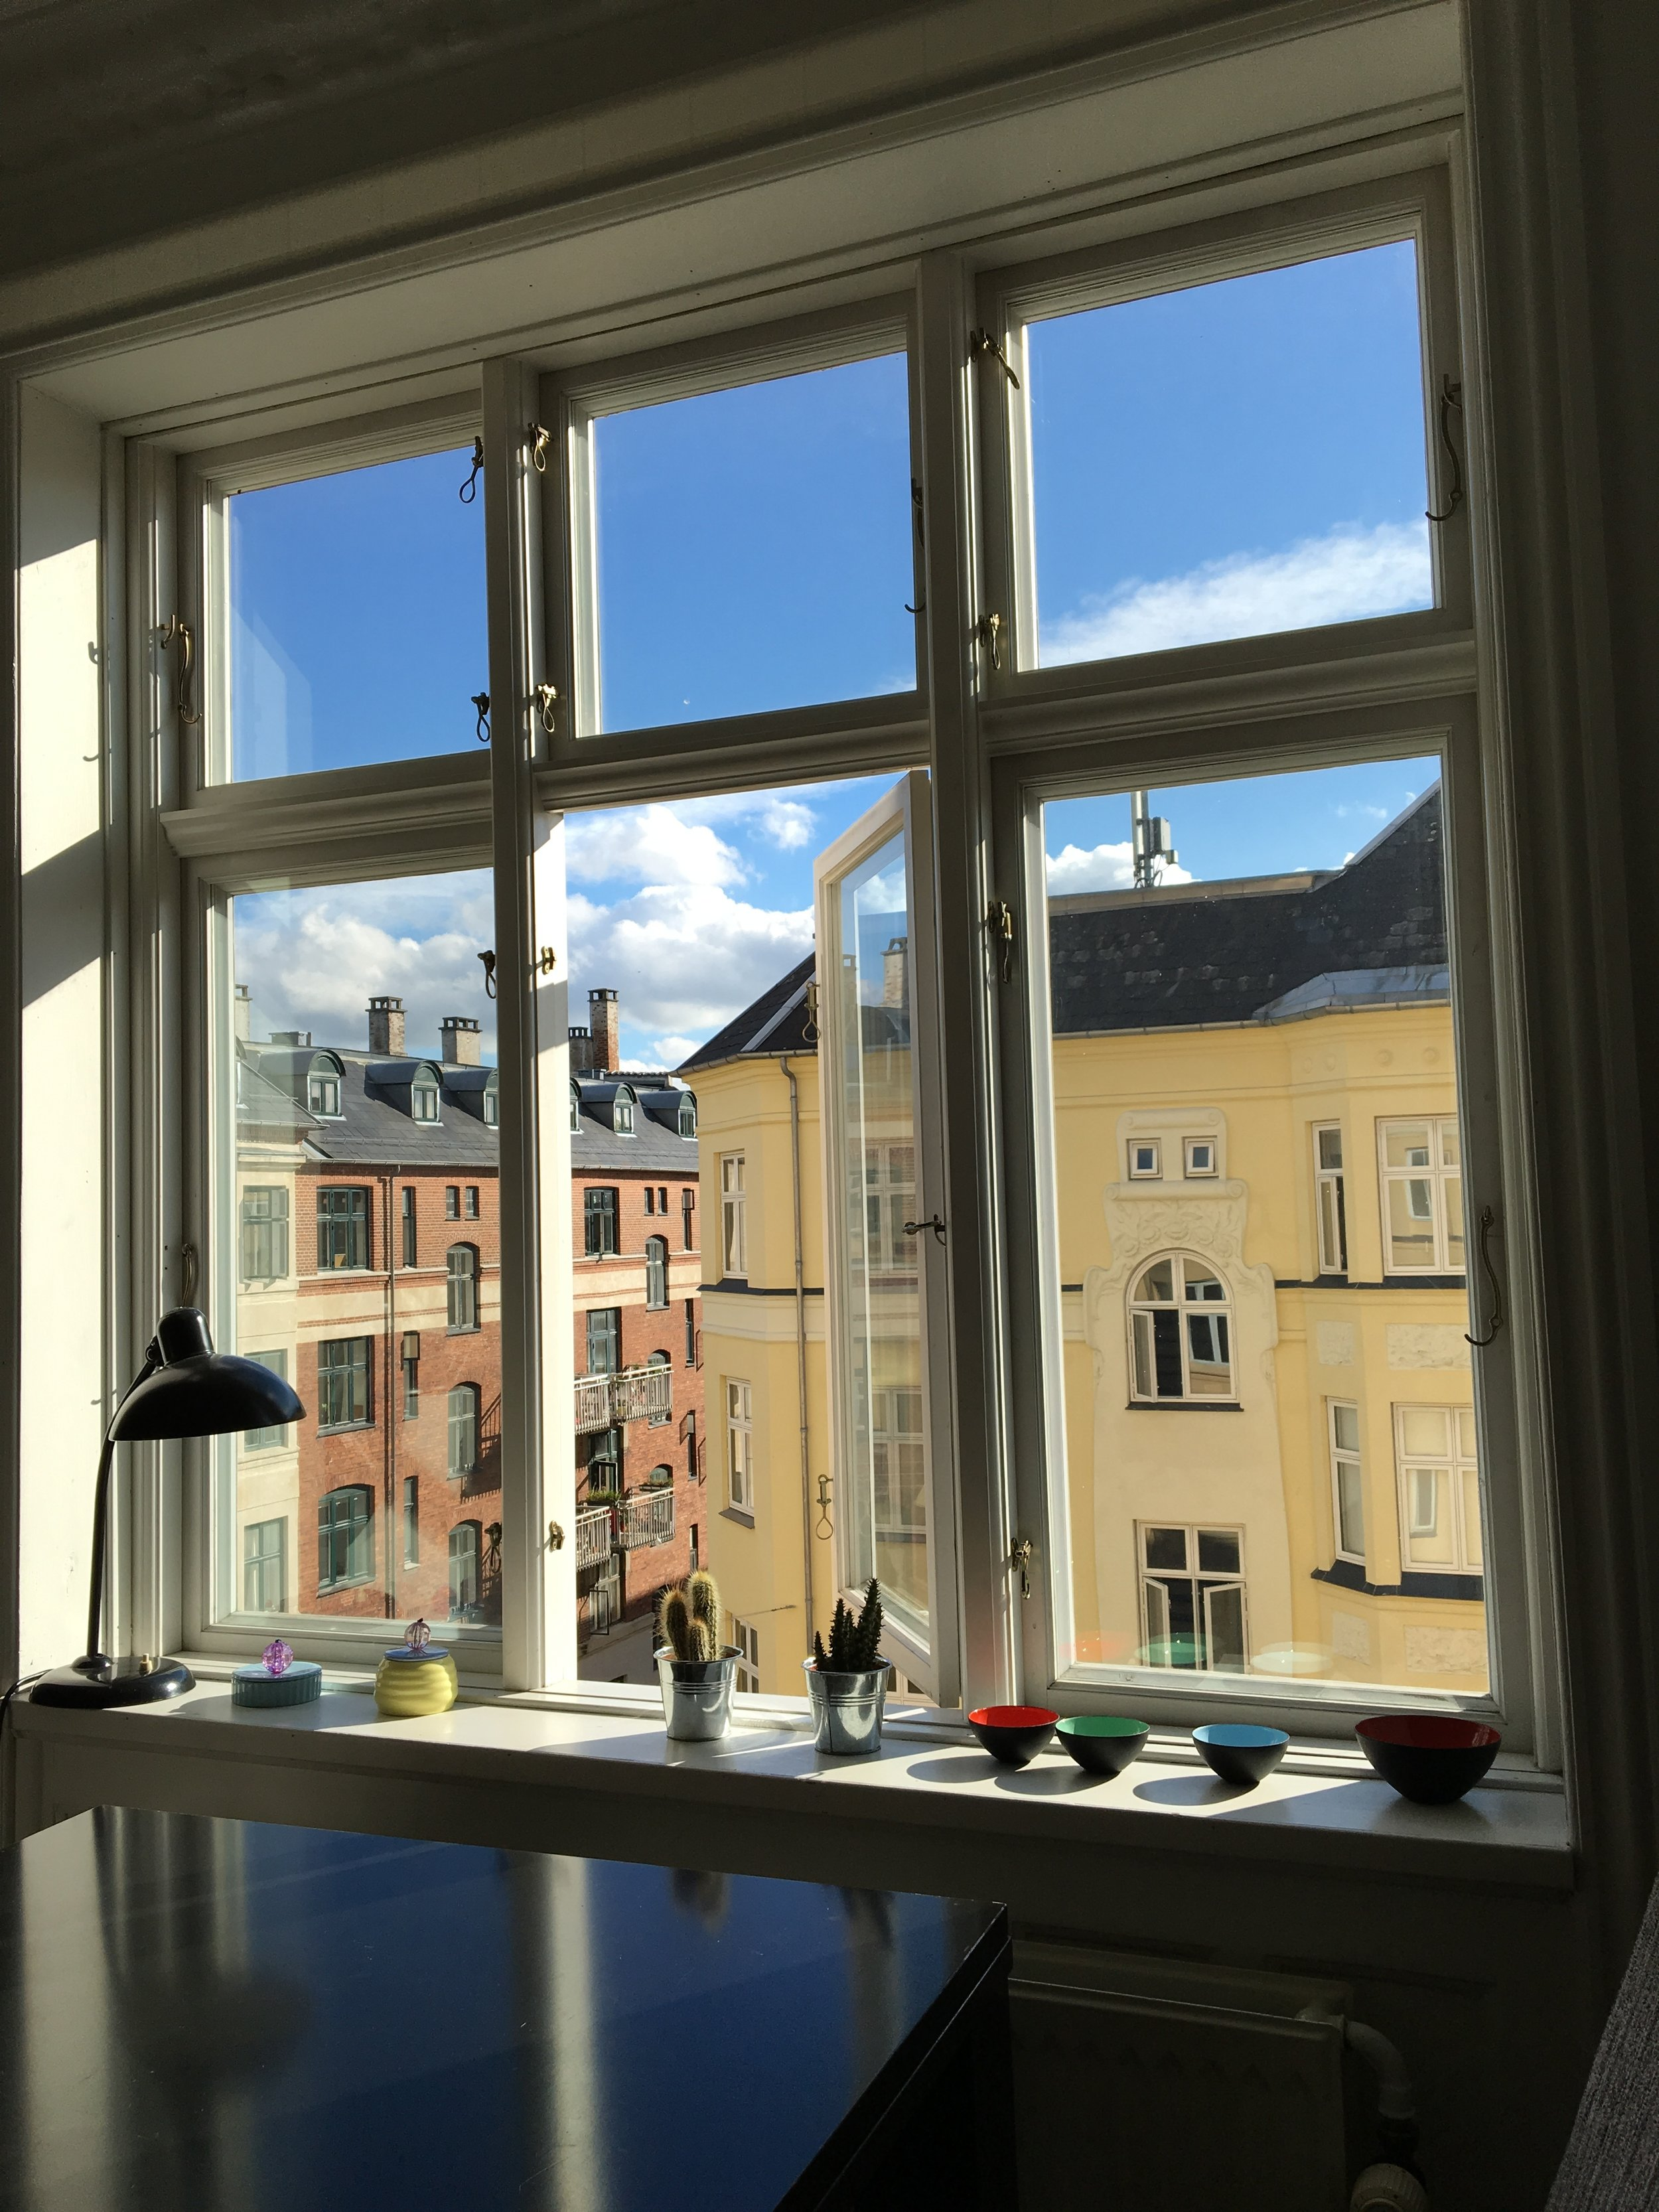 The view from my Airbnb in Copenhagen, Denmark, in August 2016. Photo by Ranger Holly.